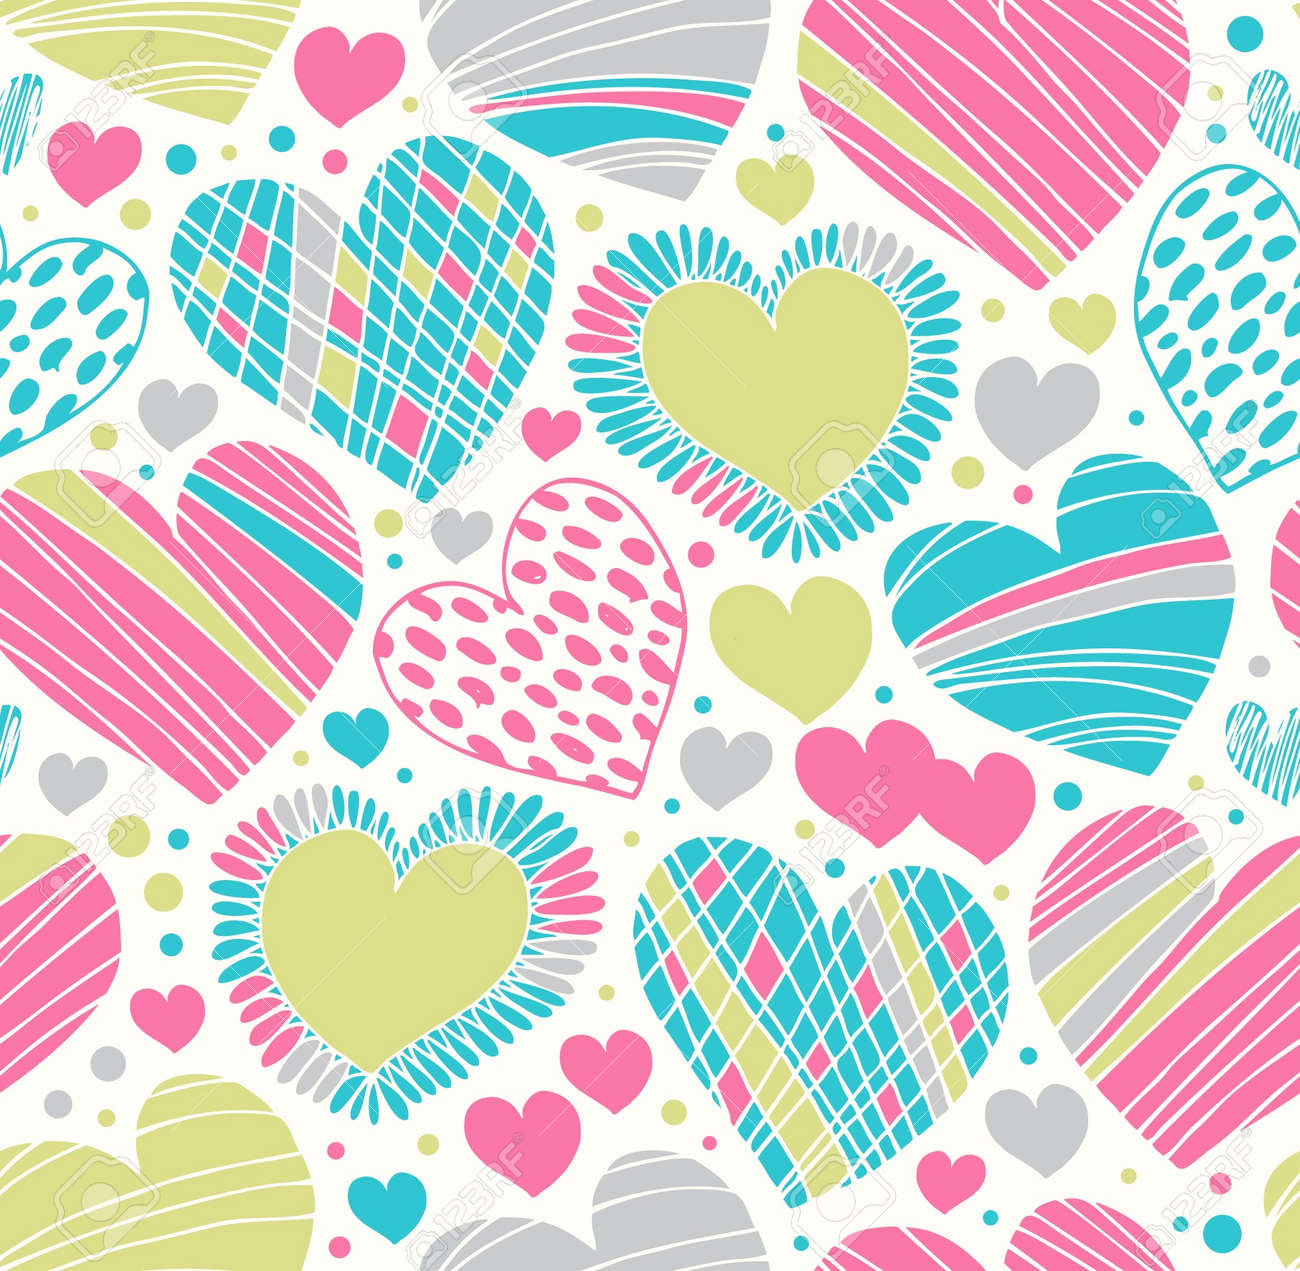 Colorful love ornamental pattern with hearts. Seamless scribble background. Creative fabric texture with many details Stock Vector - 17933358